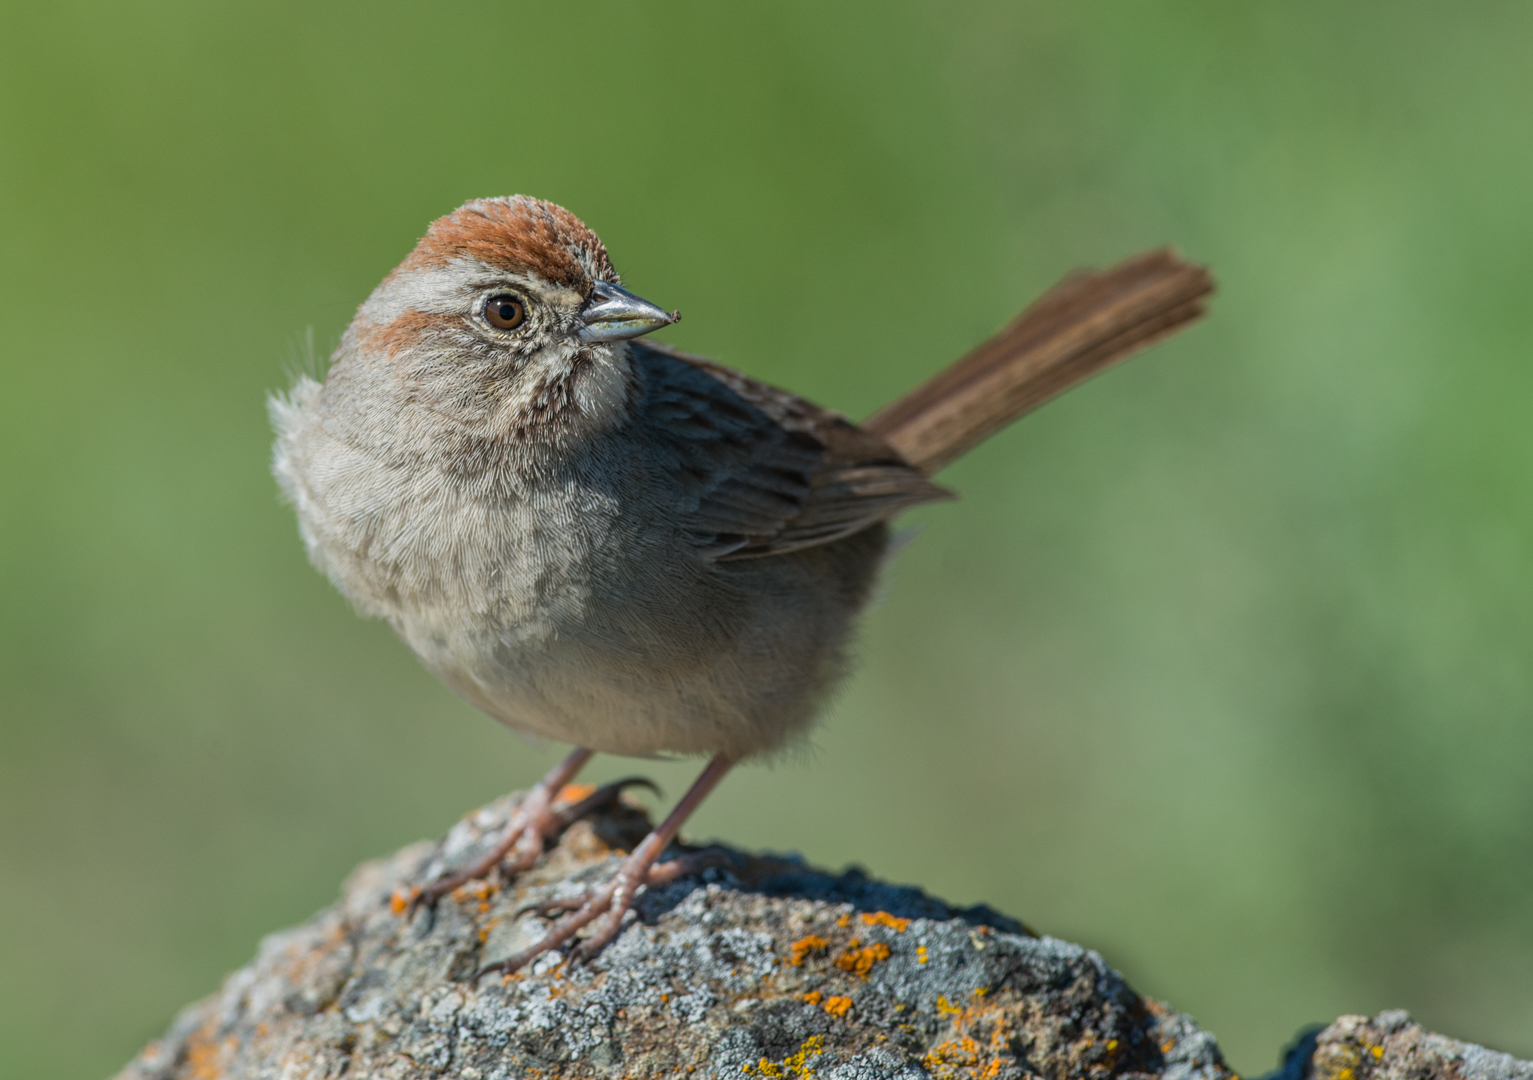 Featured Photo 21: Rufous-crowned Sparrow (Aimophila ruficeps)  EQ: D800 f/2.8 300mm  Taken: 3-1-15 12:38  Setting: 300mm, f/6.3, 1/1000s, ISO250  Condition: Sunny